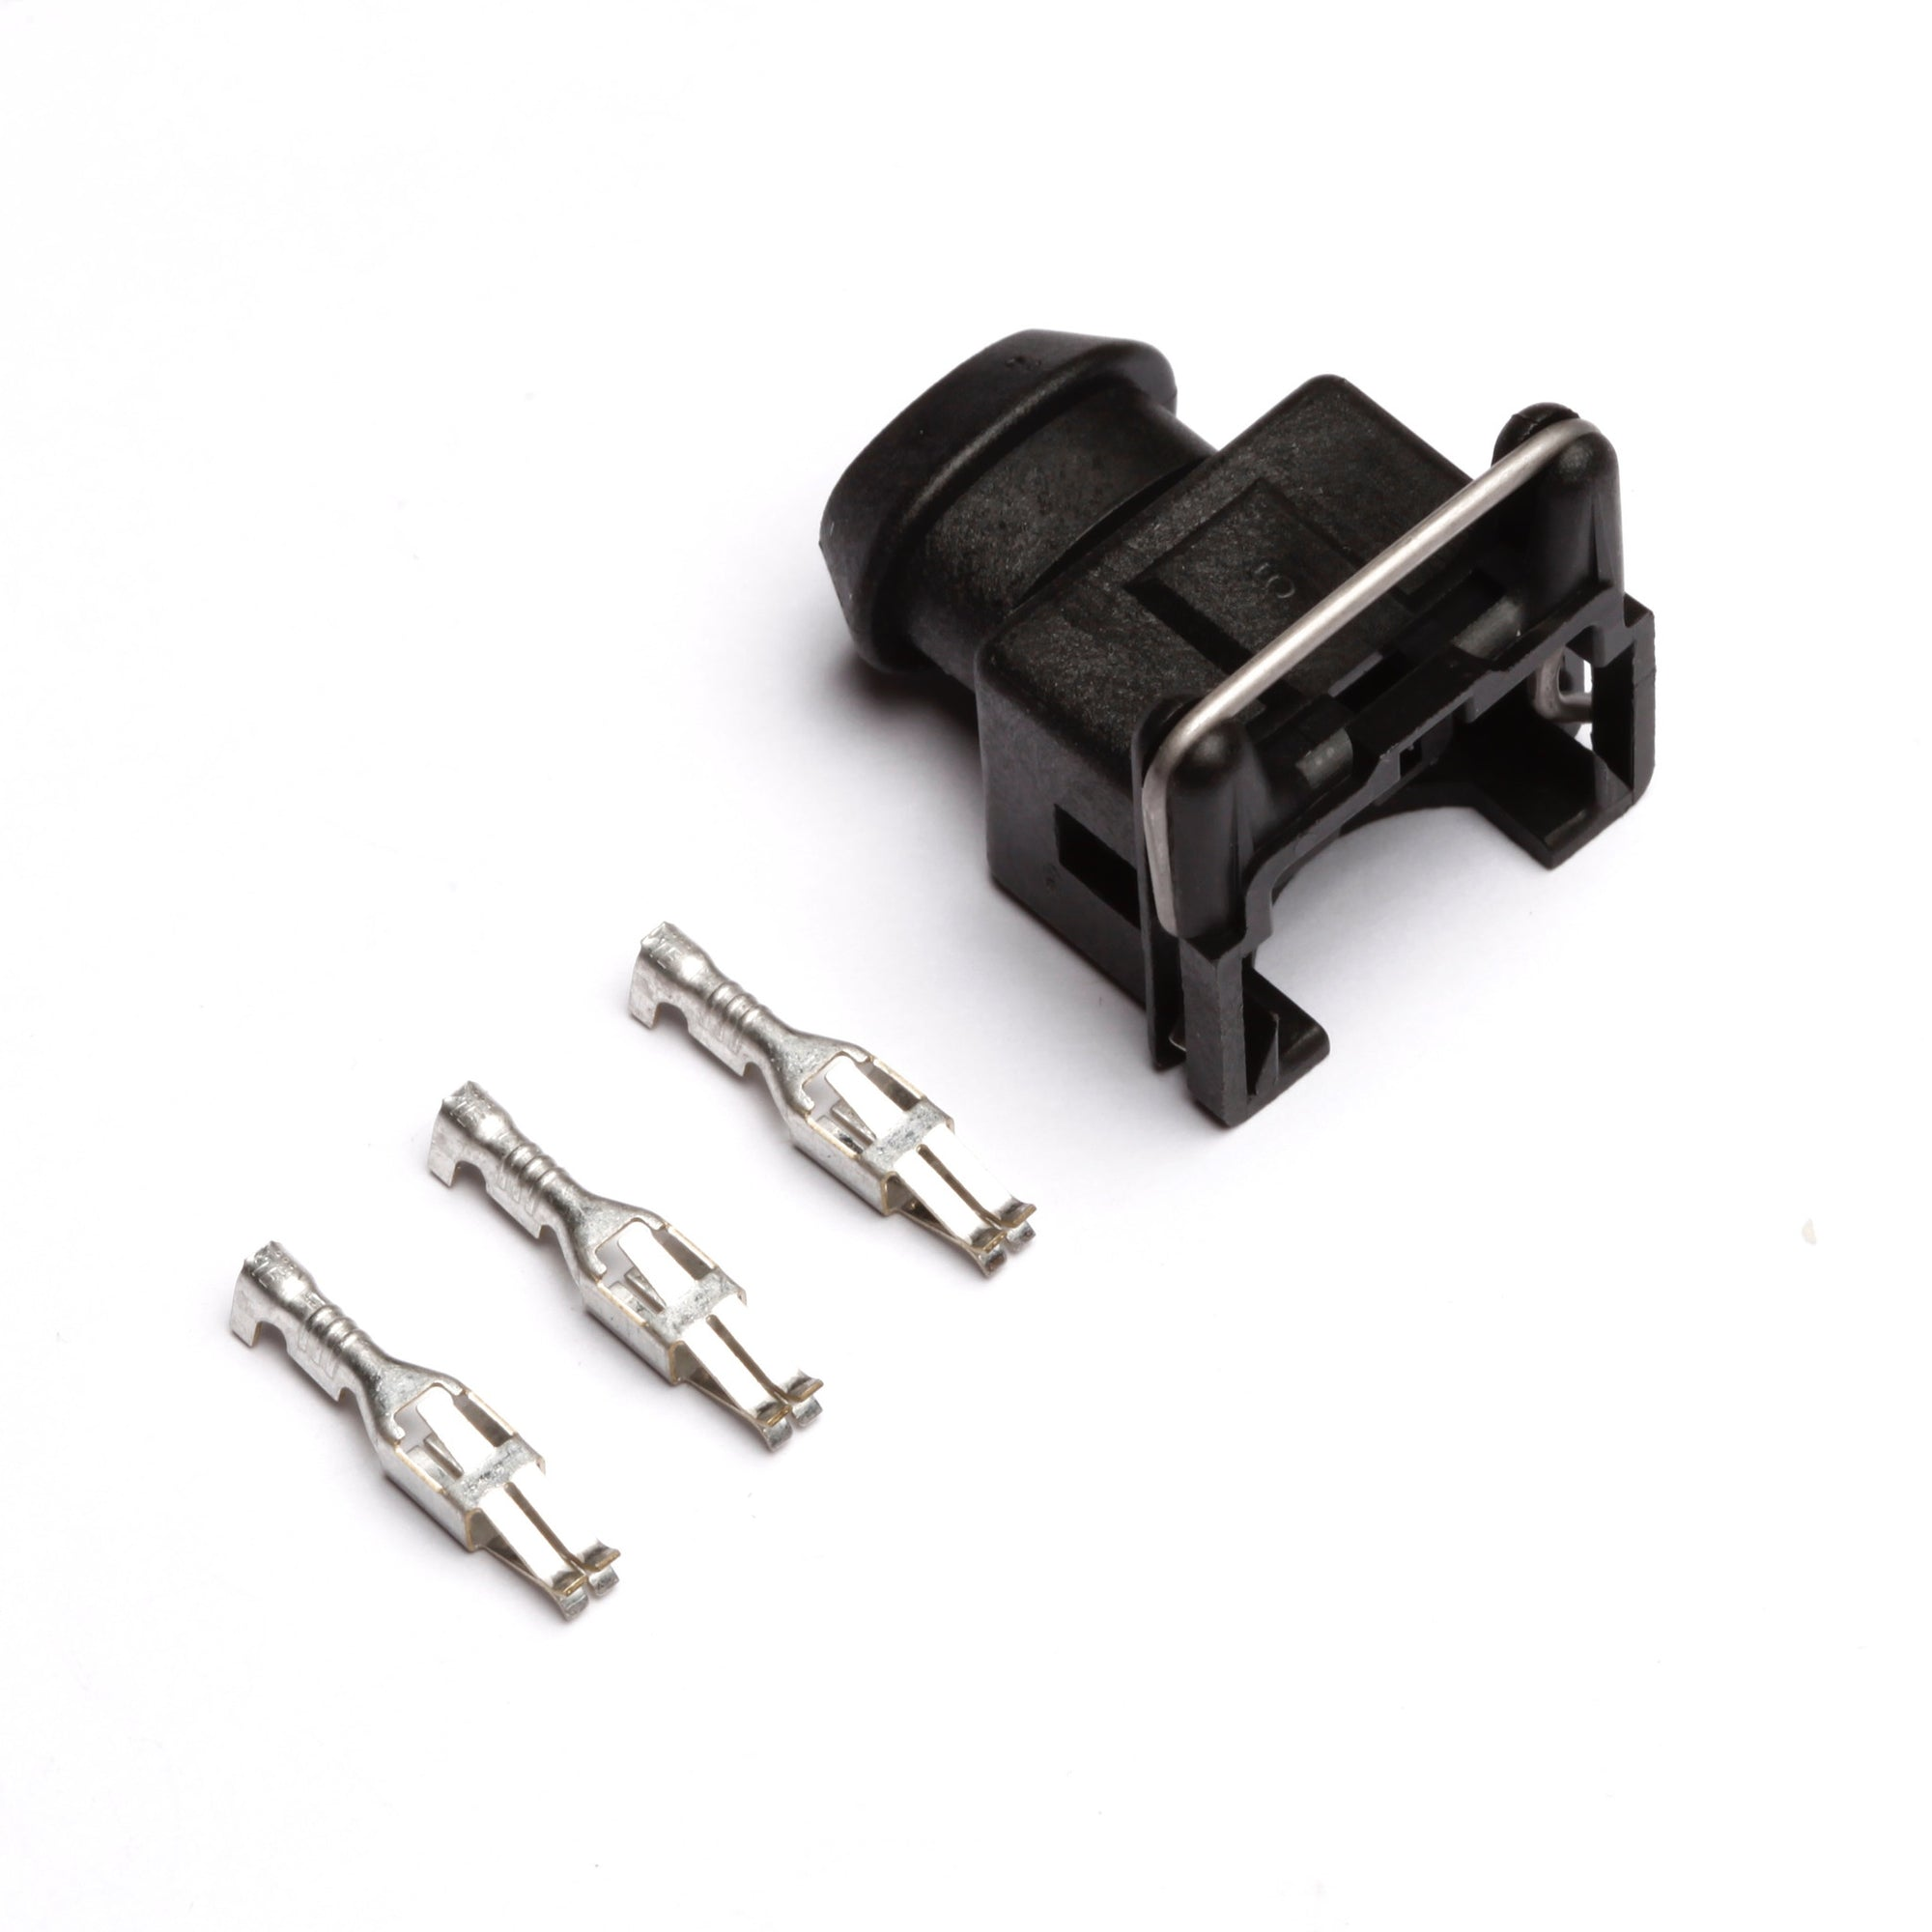 Connectors - Bosch EV1 Connector Kit